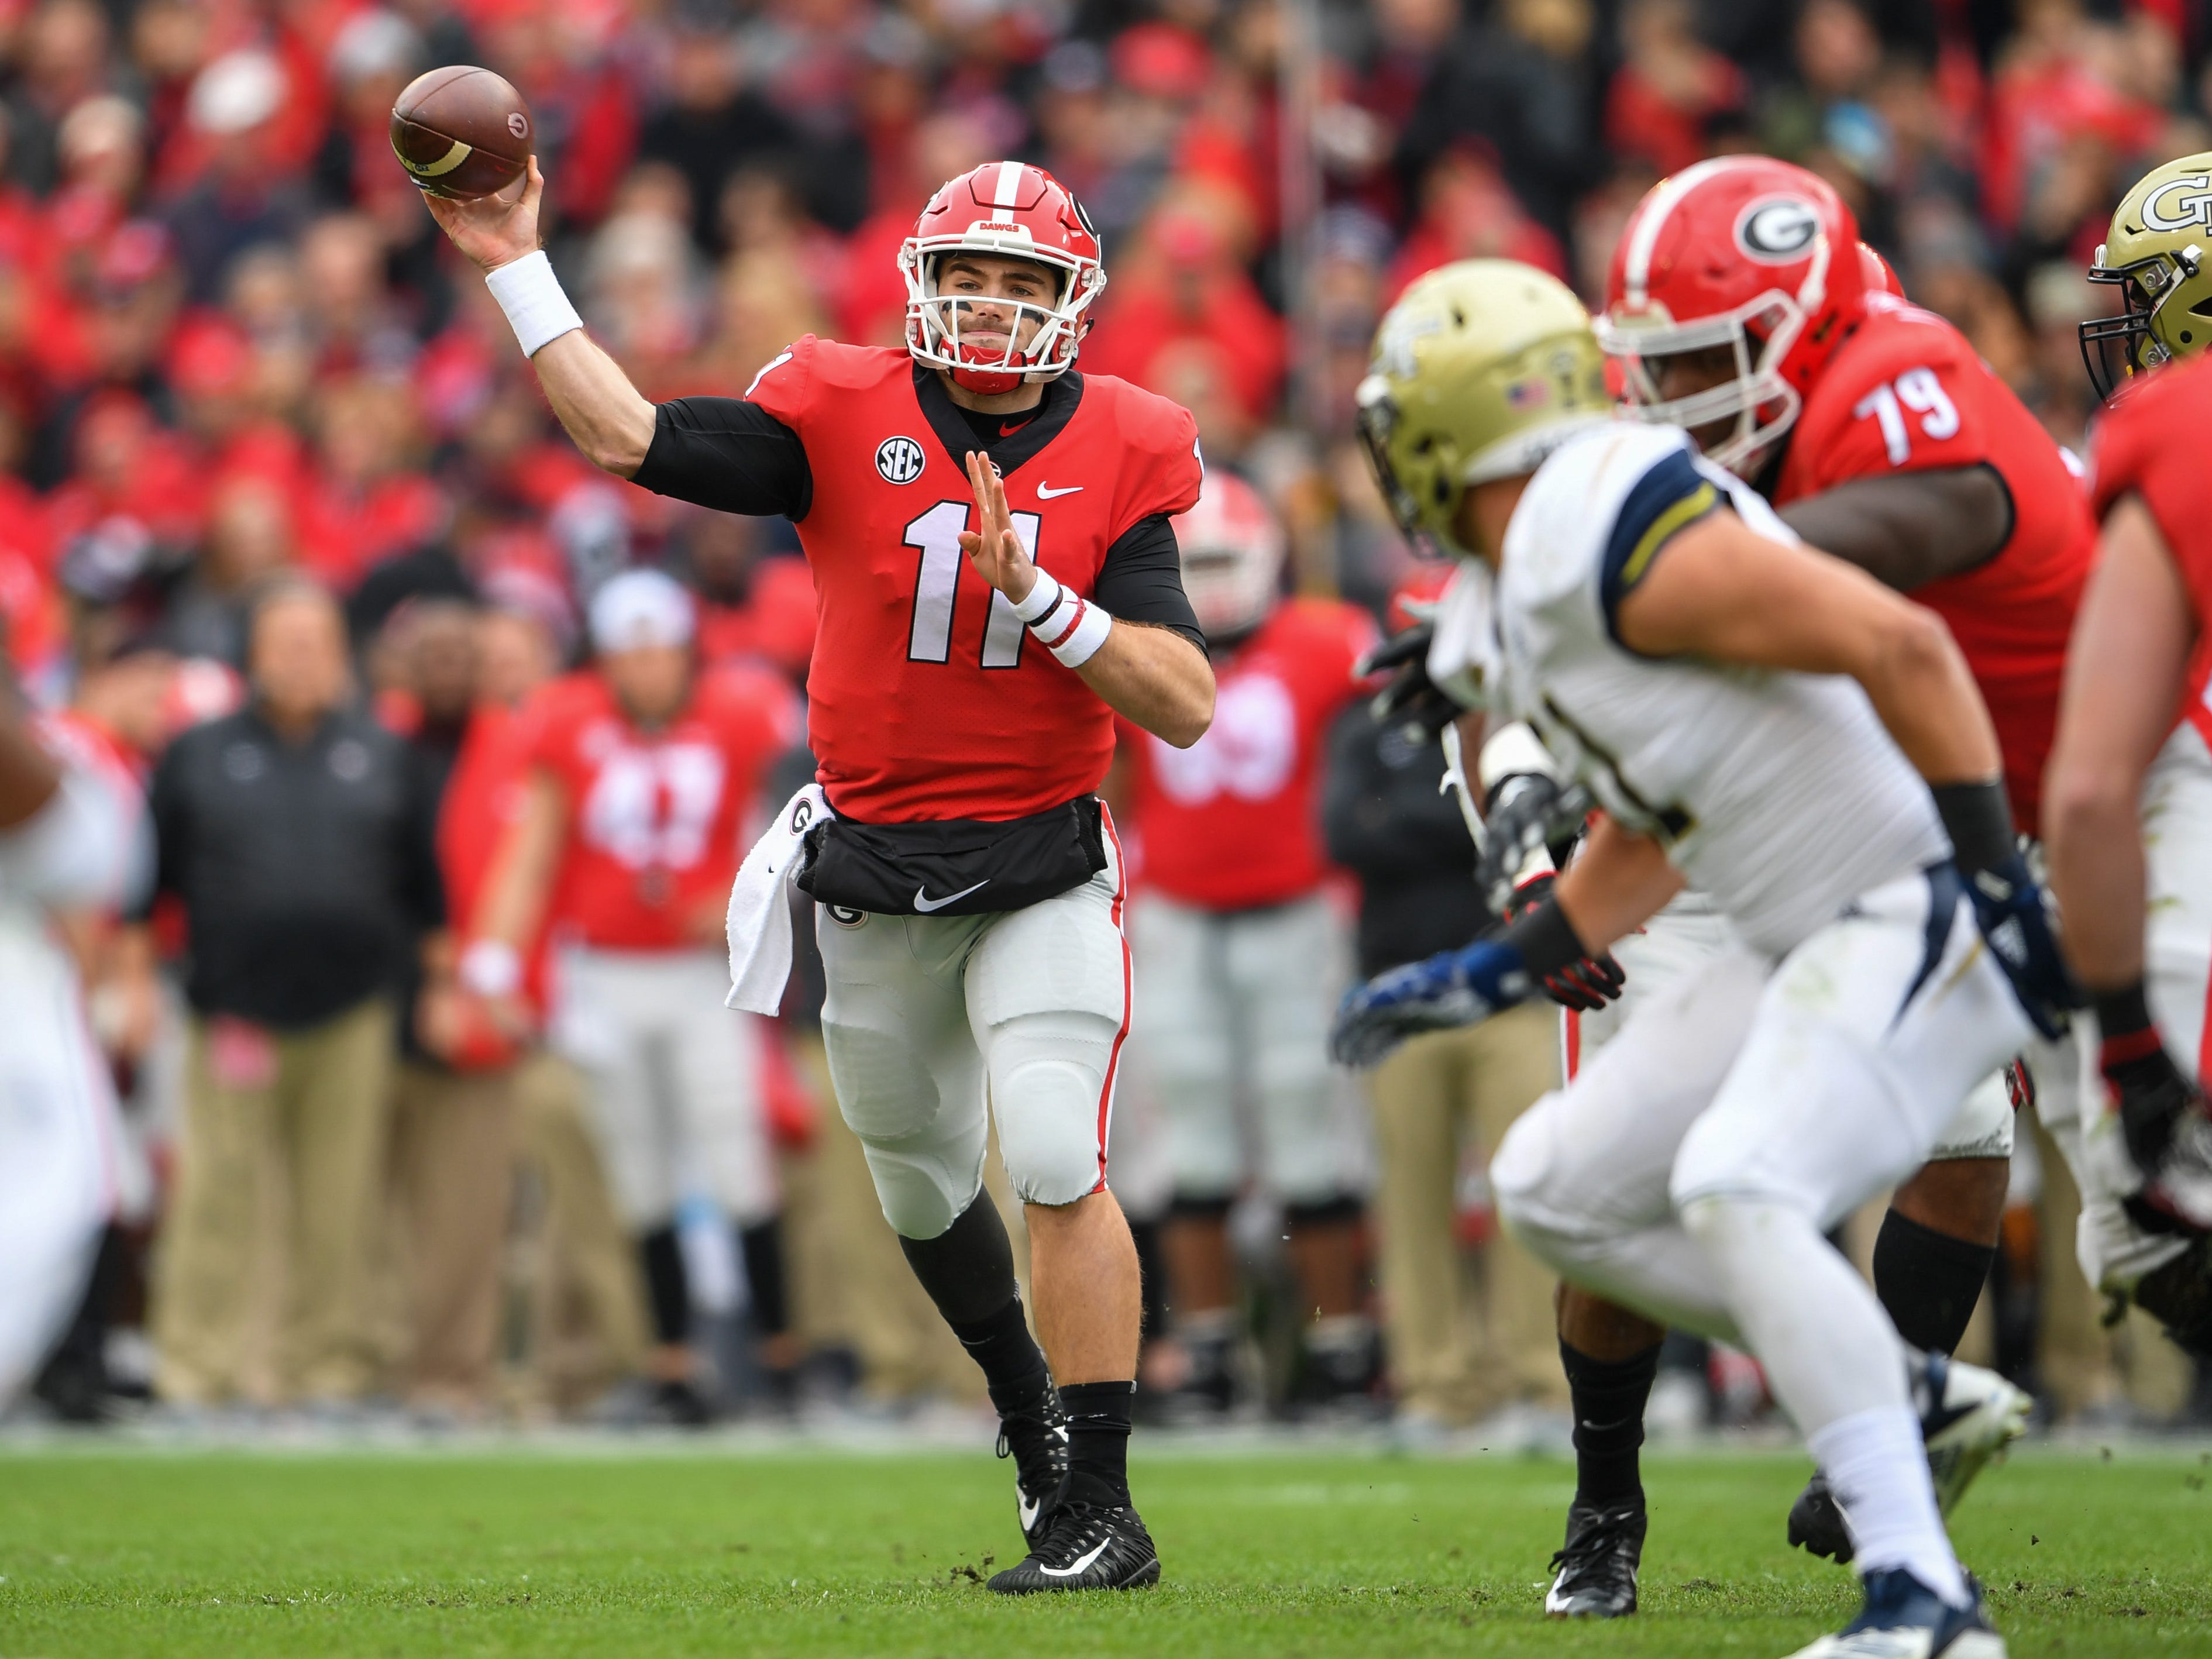 Georgiaquarterback Jake Fromm drops back to pass against Georgia Tech during the first quarter at Sanford Stadium.